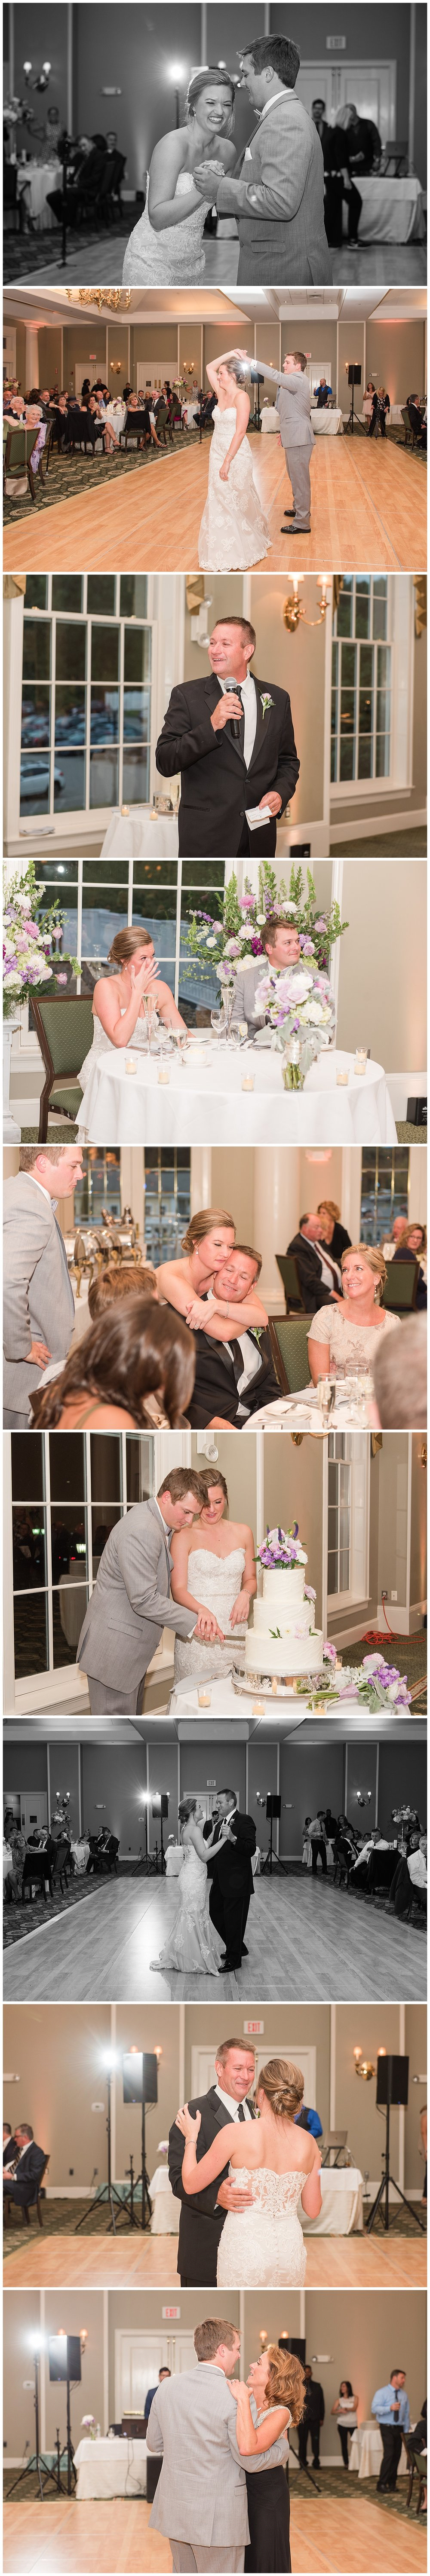 september9-charter-oak-country-club-wedding-photography-hudson-massachusetts-33.jpg